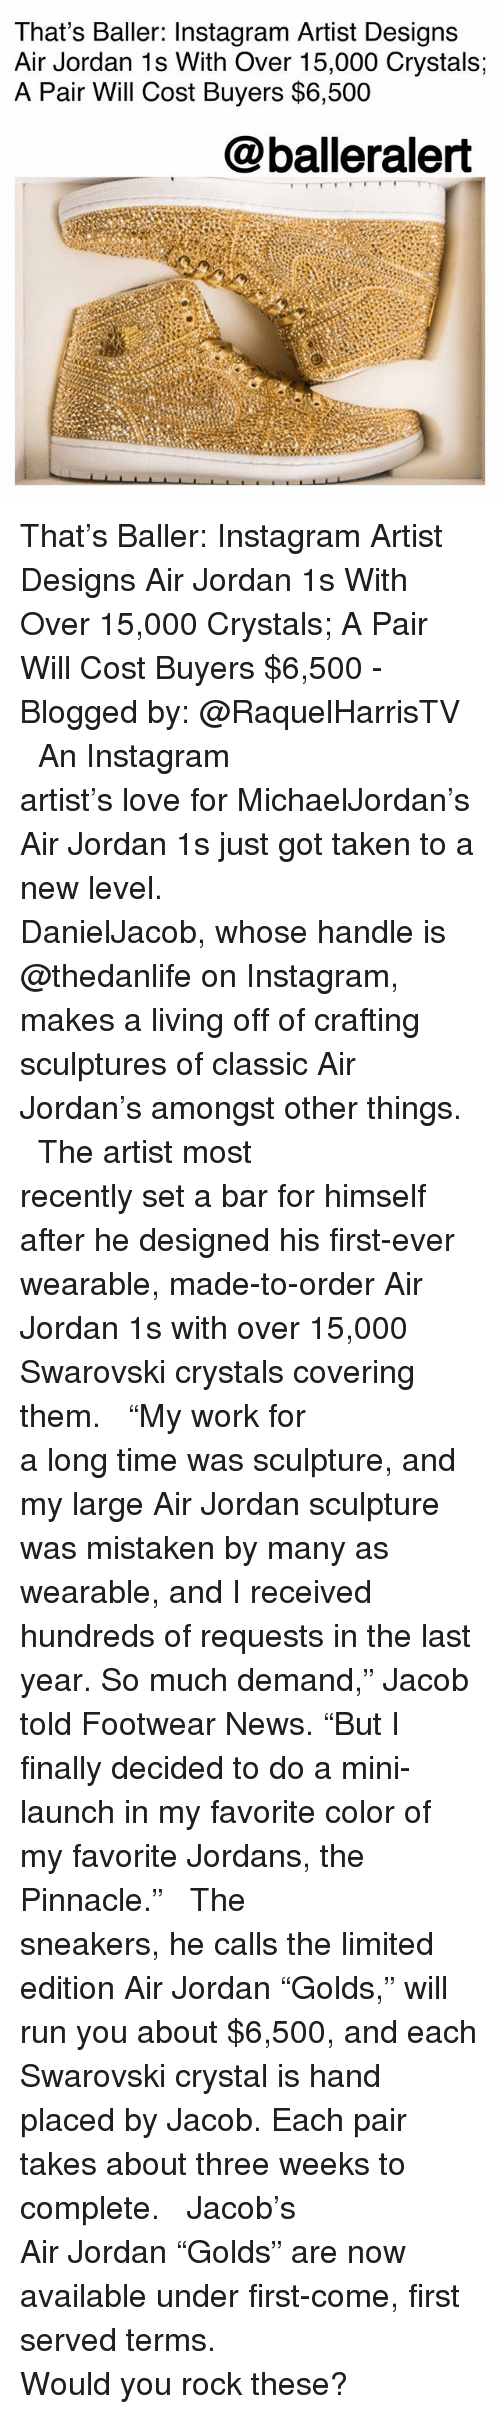 """Air Jordan, Instagram, and Jordans: That's Baller: Instagram Artist Designs  Air Jordan 1s With Over 15,000 Crystals;  A Pair Will Cost Buyers $6,500  @balleralert That's Baller: Instagram Artist Designs Air Jordan 1s With Over 15,000 Crystals; A Pair Will Cost Buyers $6,500 - Blogged by: @RaquelHarrisTV ⠀⠀⠀⠀⠀⠀⠀⠀⠀ ⠀⠀⠀⠀⠀⠀⠀⠀⠀ An Instagram artist's love for MichaelJordan's Air Jordan 1s just got taken to a new level. ⠀⠀⠀⠀⠀⠀⠀⠀⠀ ⠀⠀⠀⠀⠀⠀⠀⠀⠀ DanielJacob, whose handle is @thedanlife on Instagram, makes a living off of crafting sculptures of classic Air Jordan's amongst other things. ⠀⠀⠀⠀⠀⠀⠀⠀⠀ ⠀⠀⠀⠀⠀⠀⠀⠀⠀ The artist most recently set a bar for himself after he designed his first-ever wearable, made-to-order Air Jordan 1s with over 15,000 Swarovski crystals covering them. ⠀⠀⠀⠀⠀⠀⠀⠀⠀ ⠀⠀⠀⠀⠀⠀⠀⠀⠀ """"My work for a long time was sculpture, and my large Air Jordan sculpture was mistaken by many as wearable, and I received hundreds of requests in the last year. So much demand,"""" Jacob told Footwear News. """"But I finally decided to do a mini-launch in my favorite color of my favorite Jordans, the Pinnacle."""" ⠀⠀⠀⠀⠀⠀⠀⠀⠀ ⠀⠀⠀⠀⠀⠀⠀⠀⠀ The sneakers, he calls the limited edition Air Jordan """"Golds,"""" will run you about $6,500, and each Swarovski crystal is hand placed by Jacob. Each pair takes about three weeks to complete. ⠀⠀⠀⠀⠀⠀⠀⠀⠀ ⠀⠀⠀⠀⠀⠀⠀⠀⠀ Jacob's Air Jordan """"Golds"""" are now available under first-come, first served terms. ⠀⠀⠀⠀⠀⠀⠀⠀⠀ ⠀⠀⠀⠀⠀⠀⠀⠀⠀ Would you rock these?"""